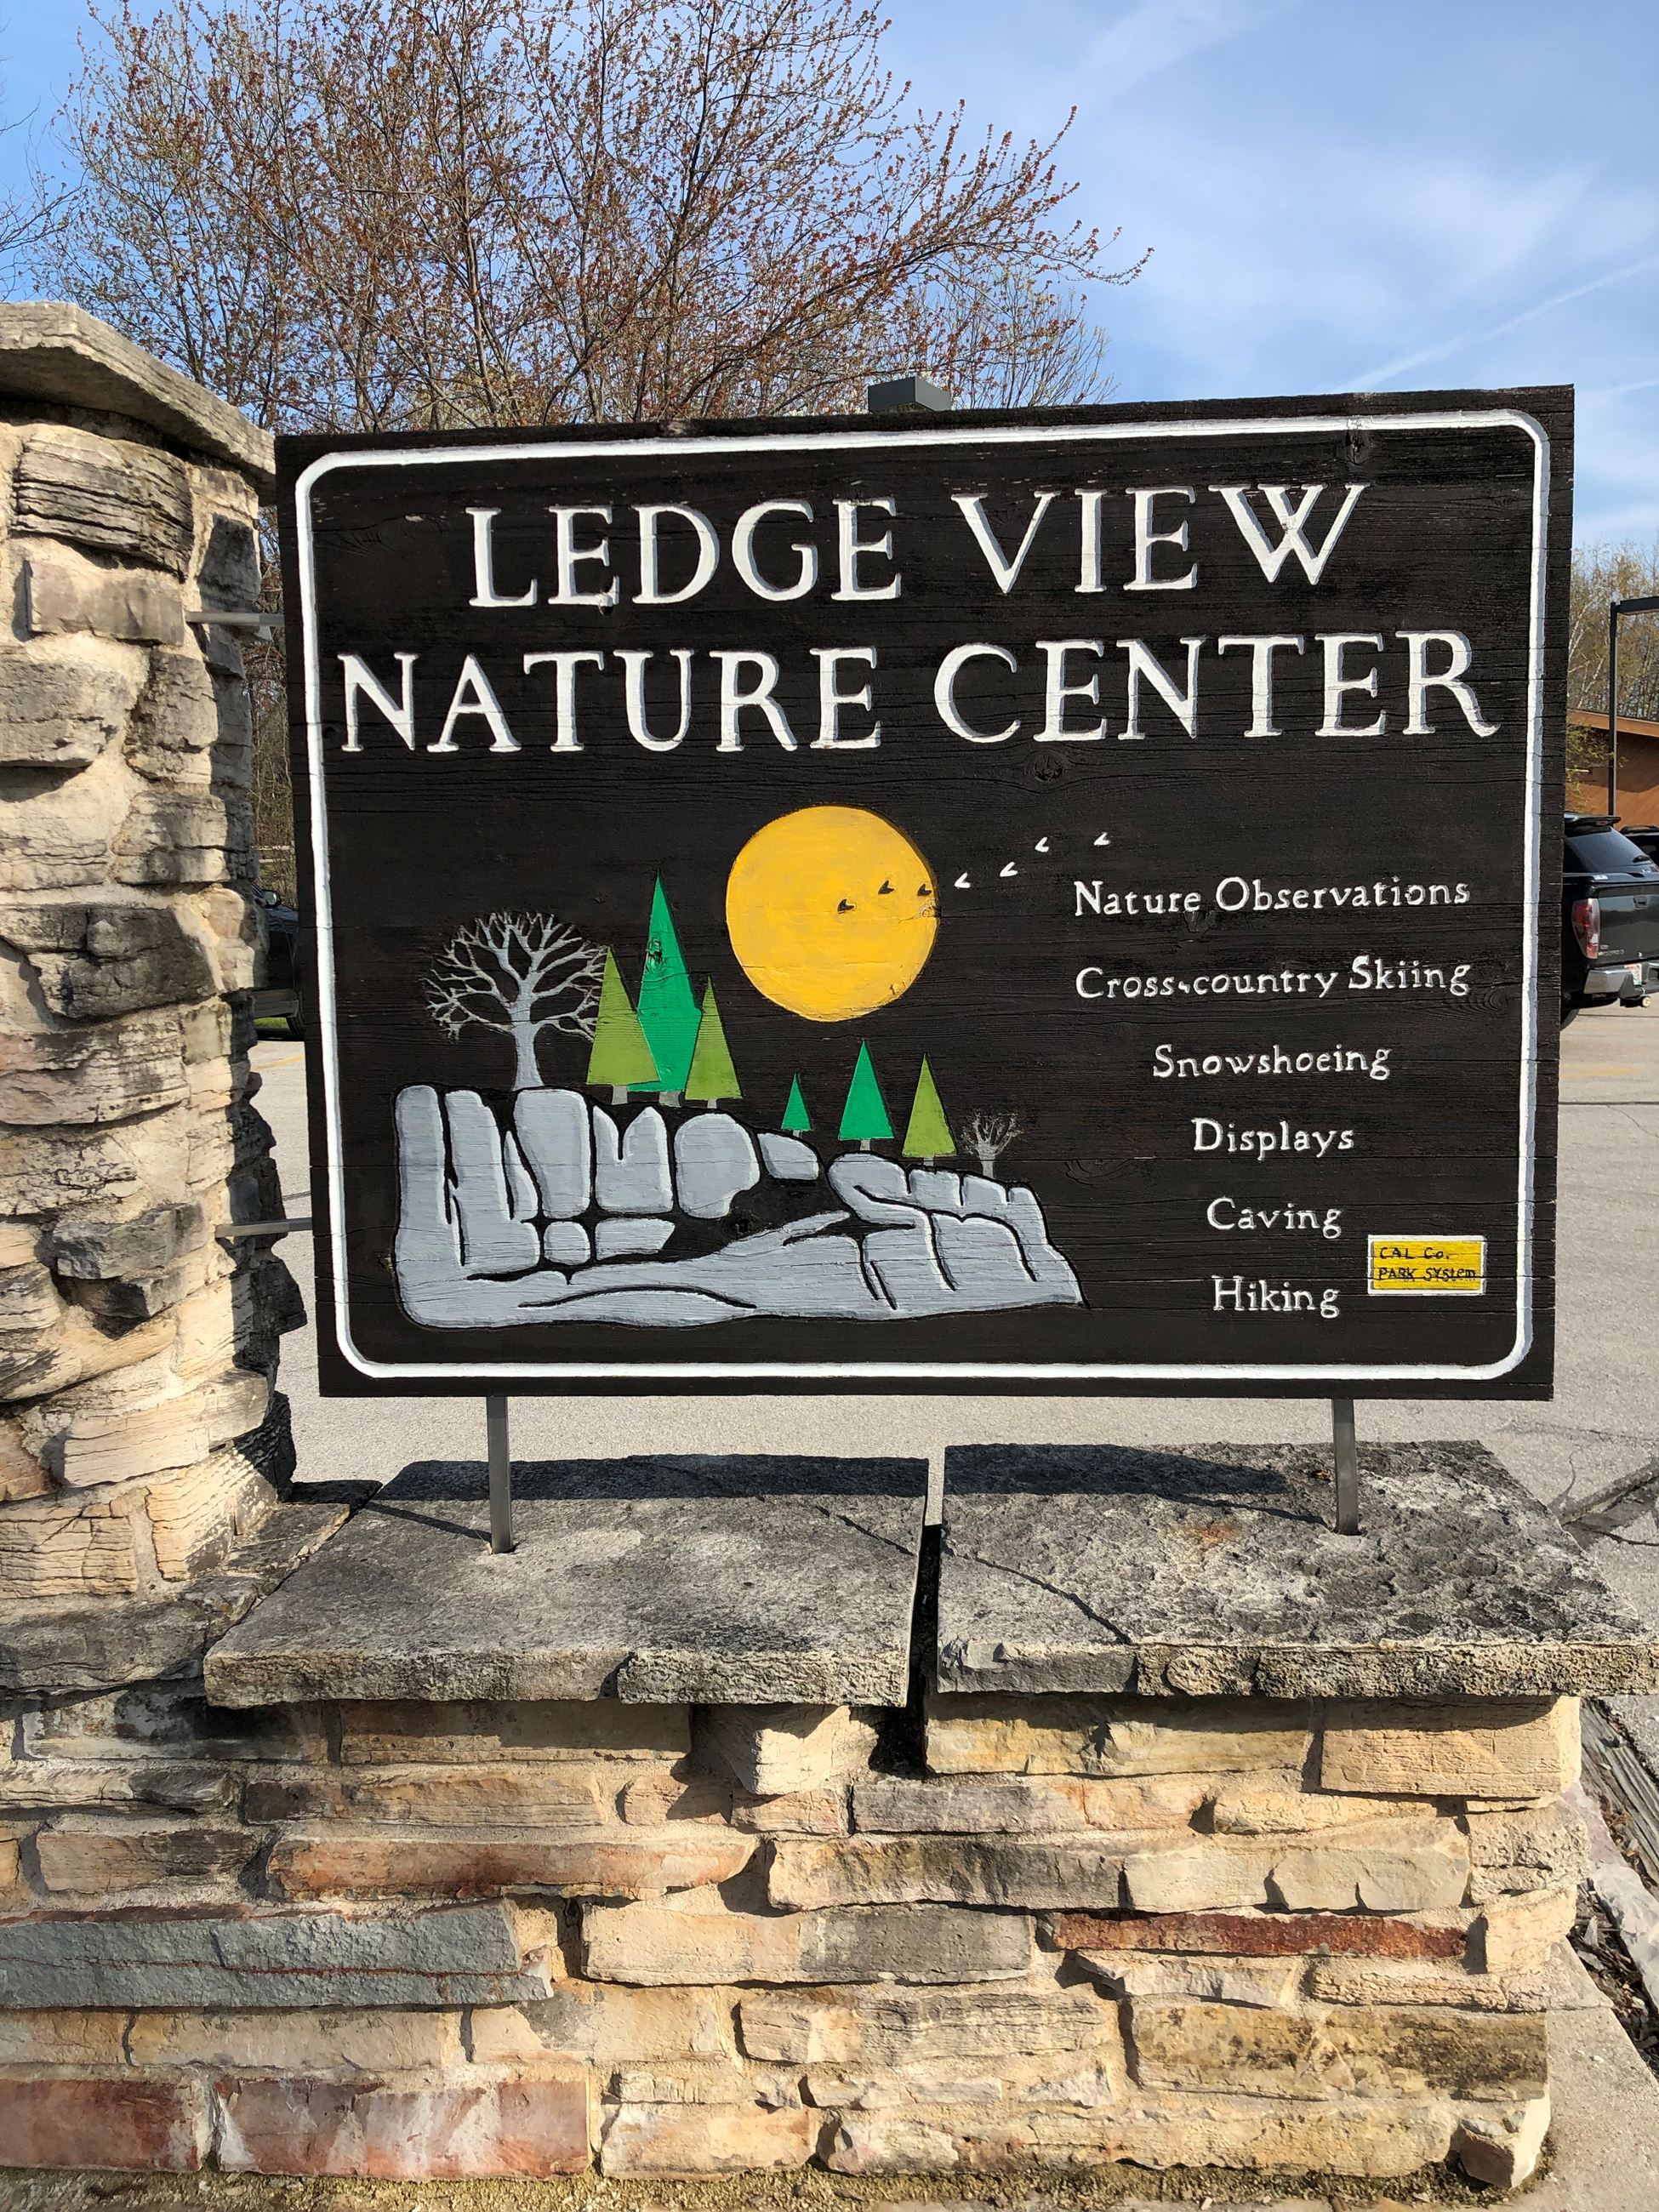 A sign that says Ledge View Nature Center